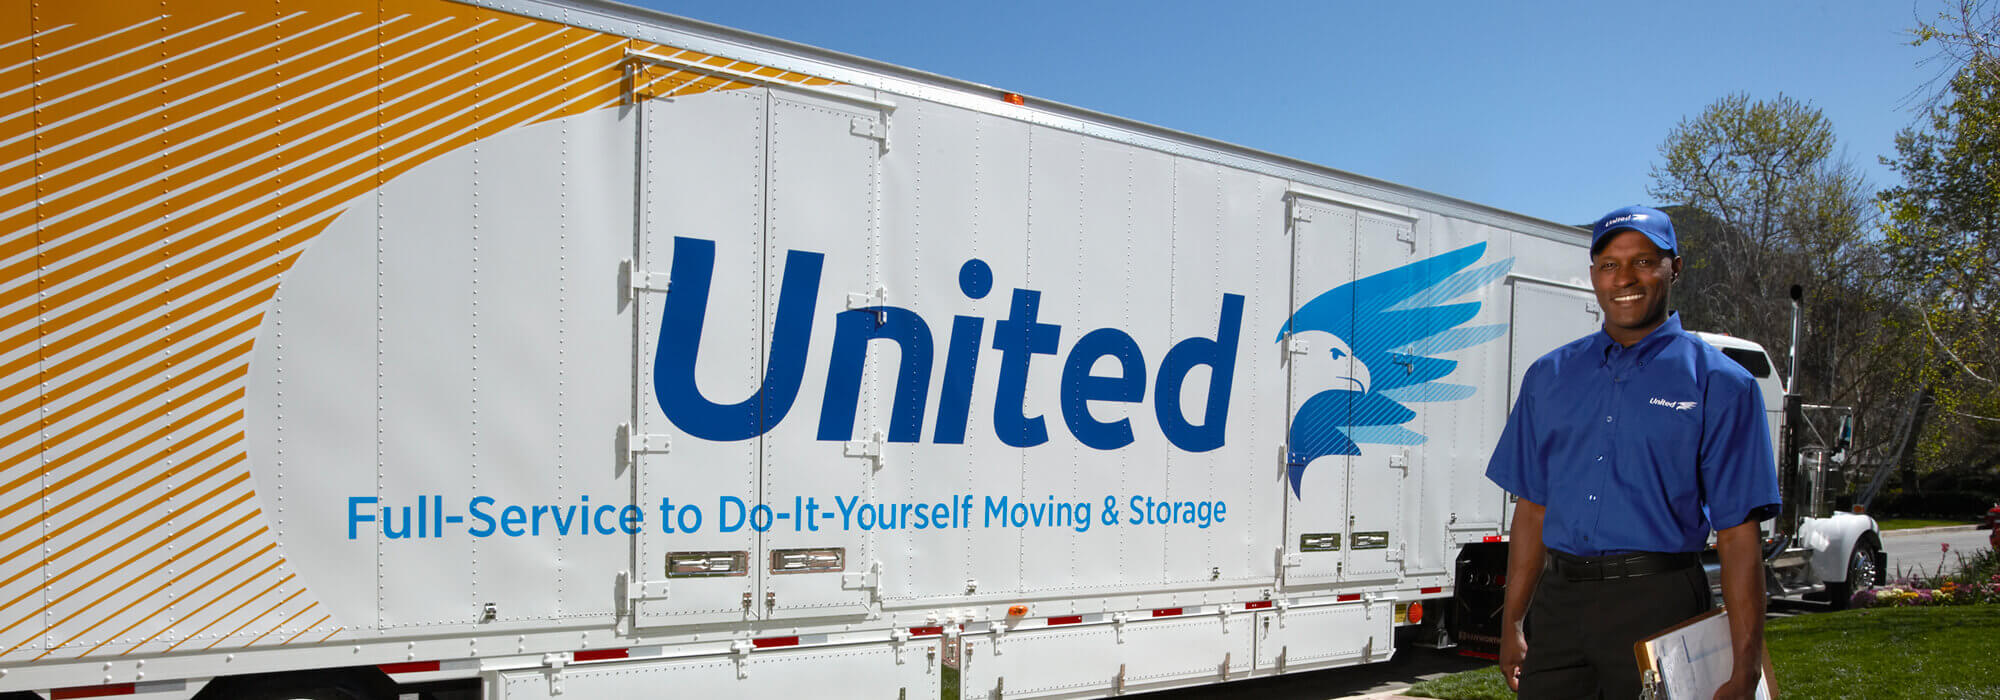 United Van Lines Moving Trailer